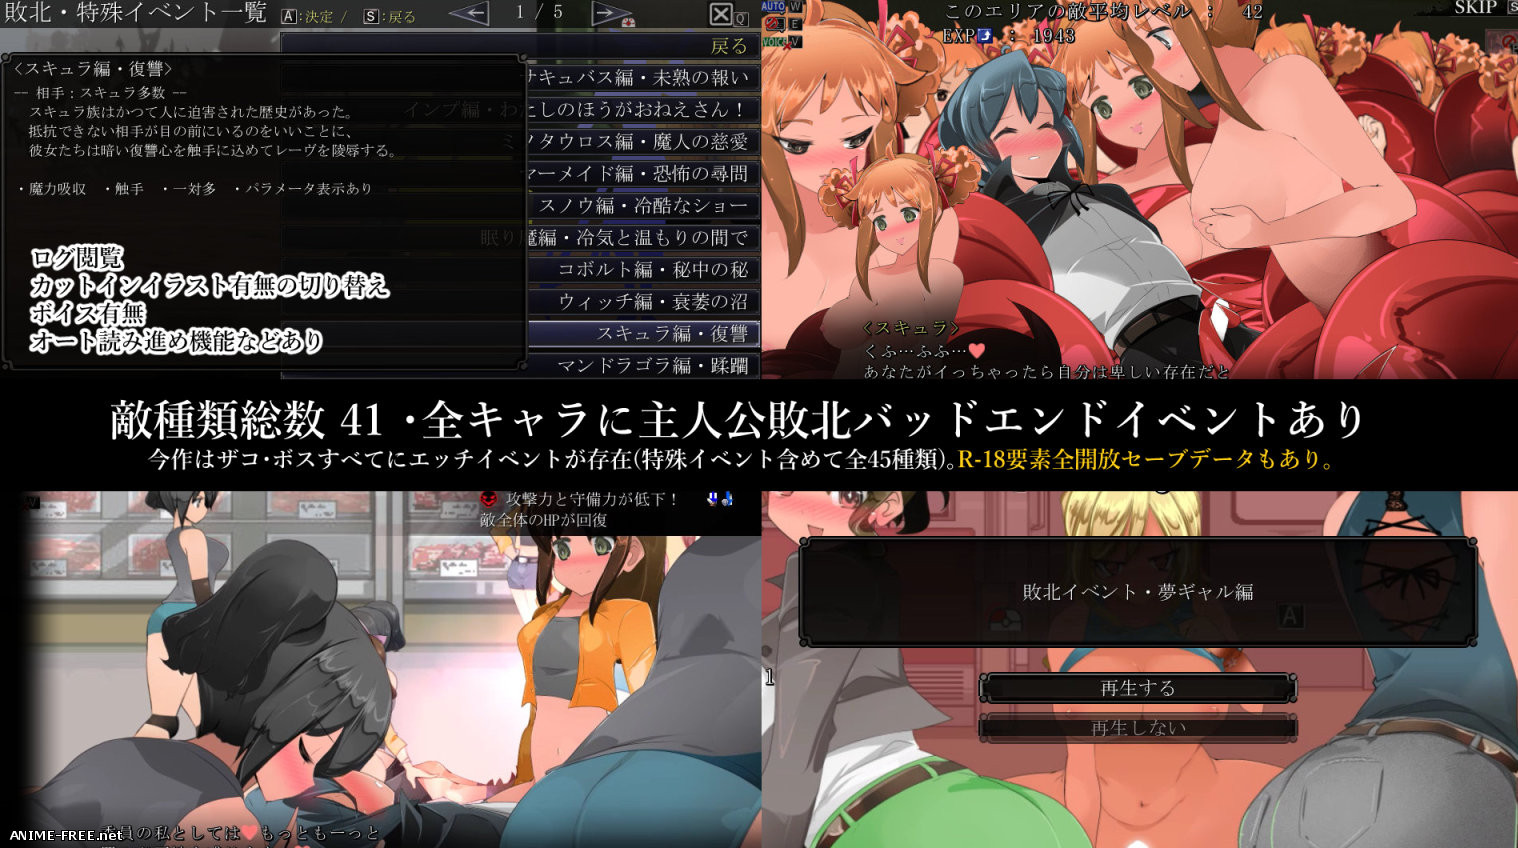 One Shota A-RPG The dead who woke up from the dream [2019] [Cen] [Action, RPG] [JAP] H-Game